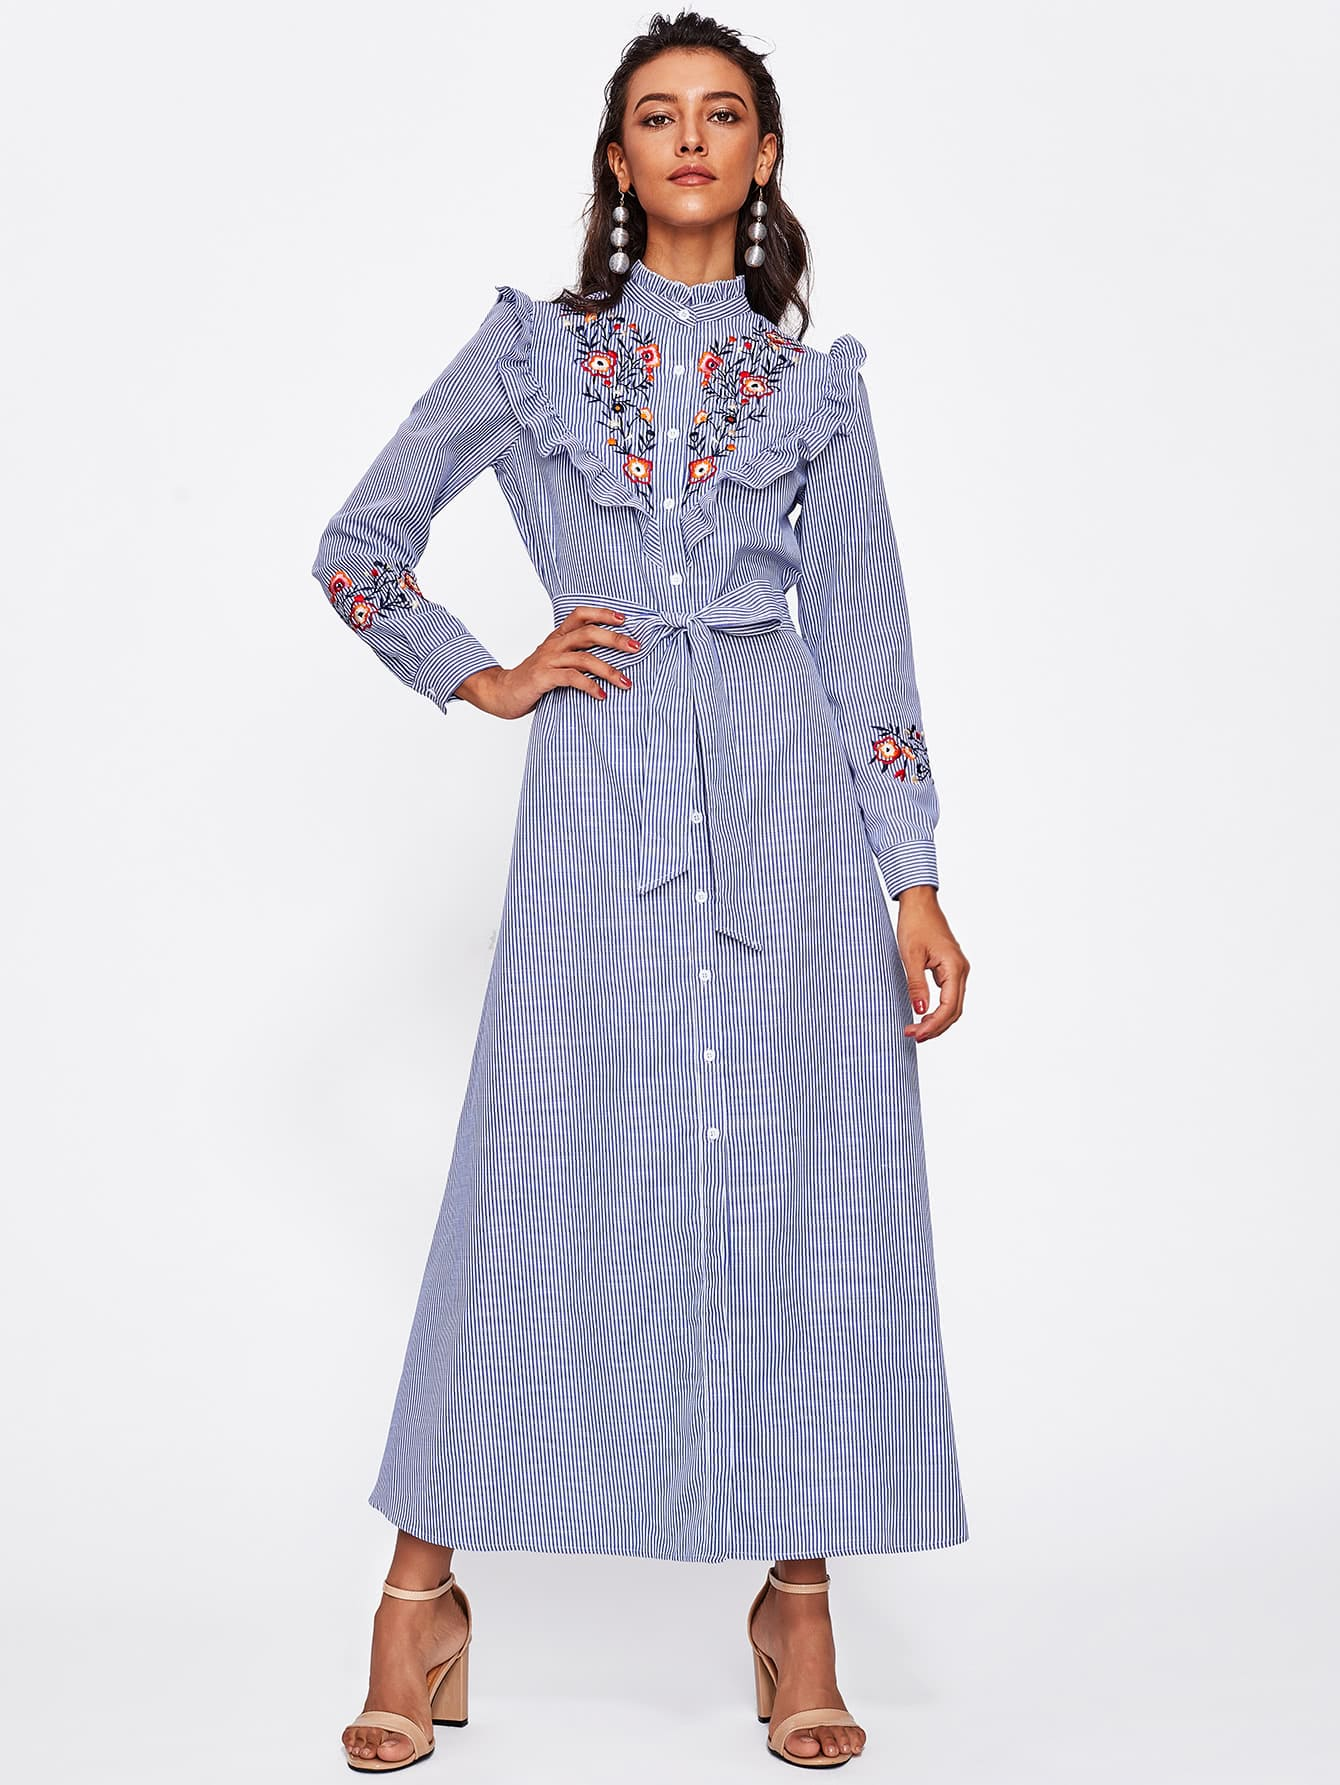 Self Belted Frill Trim Embroidered Pinstripe Shirt Dress eyelet embroidered self belted dress